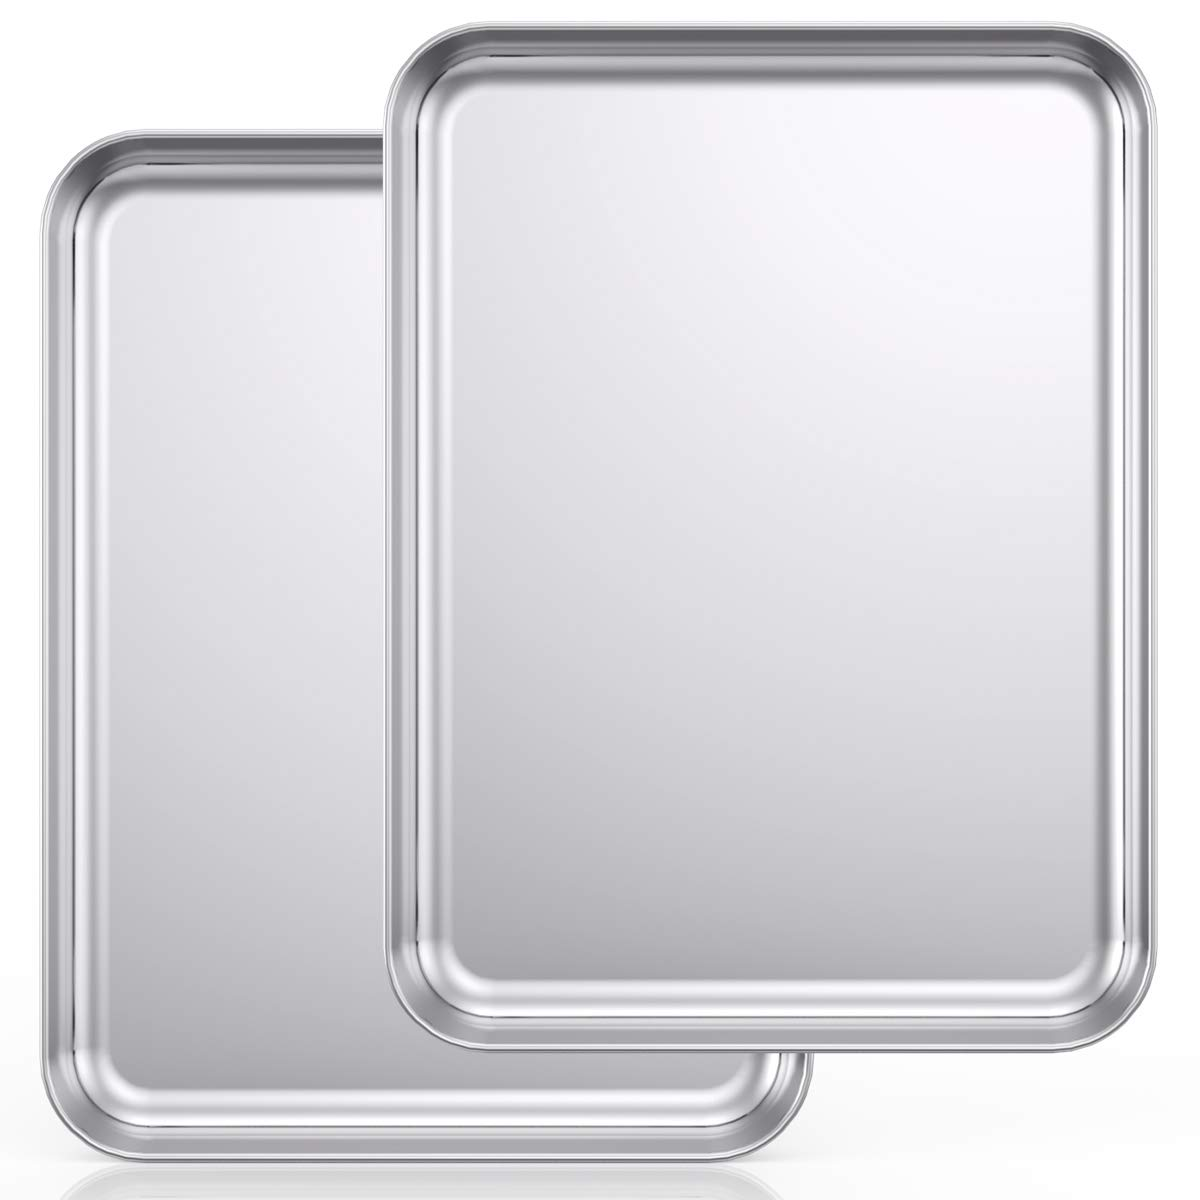 Baking Sheet Set of 2, Wildone Stainless Steel Baking Tray Cookie Pan, Size 20 x 14 x 1 Inch, Non Toxic & Heavy Duty & Easy Clean